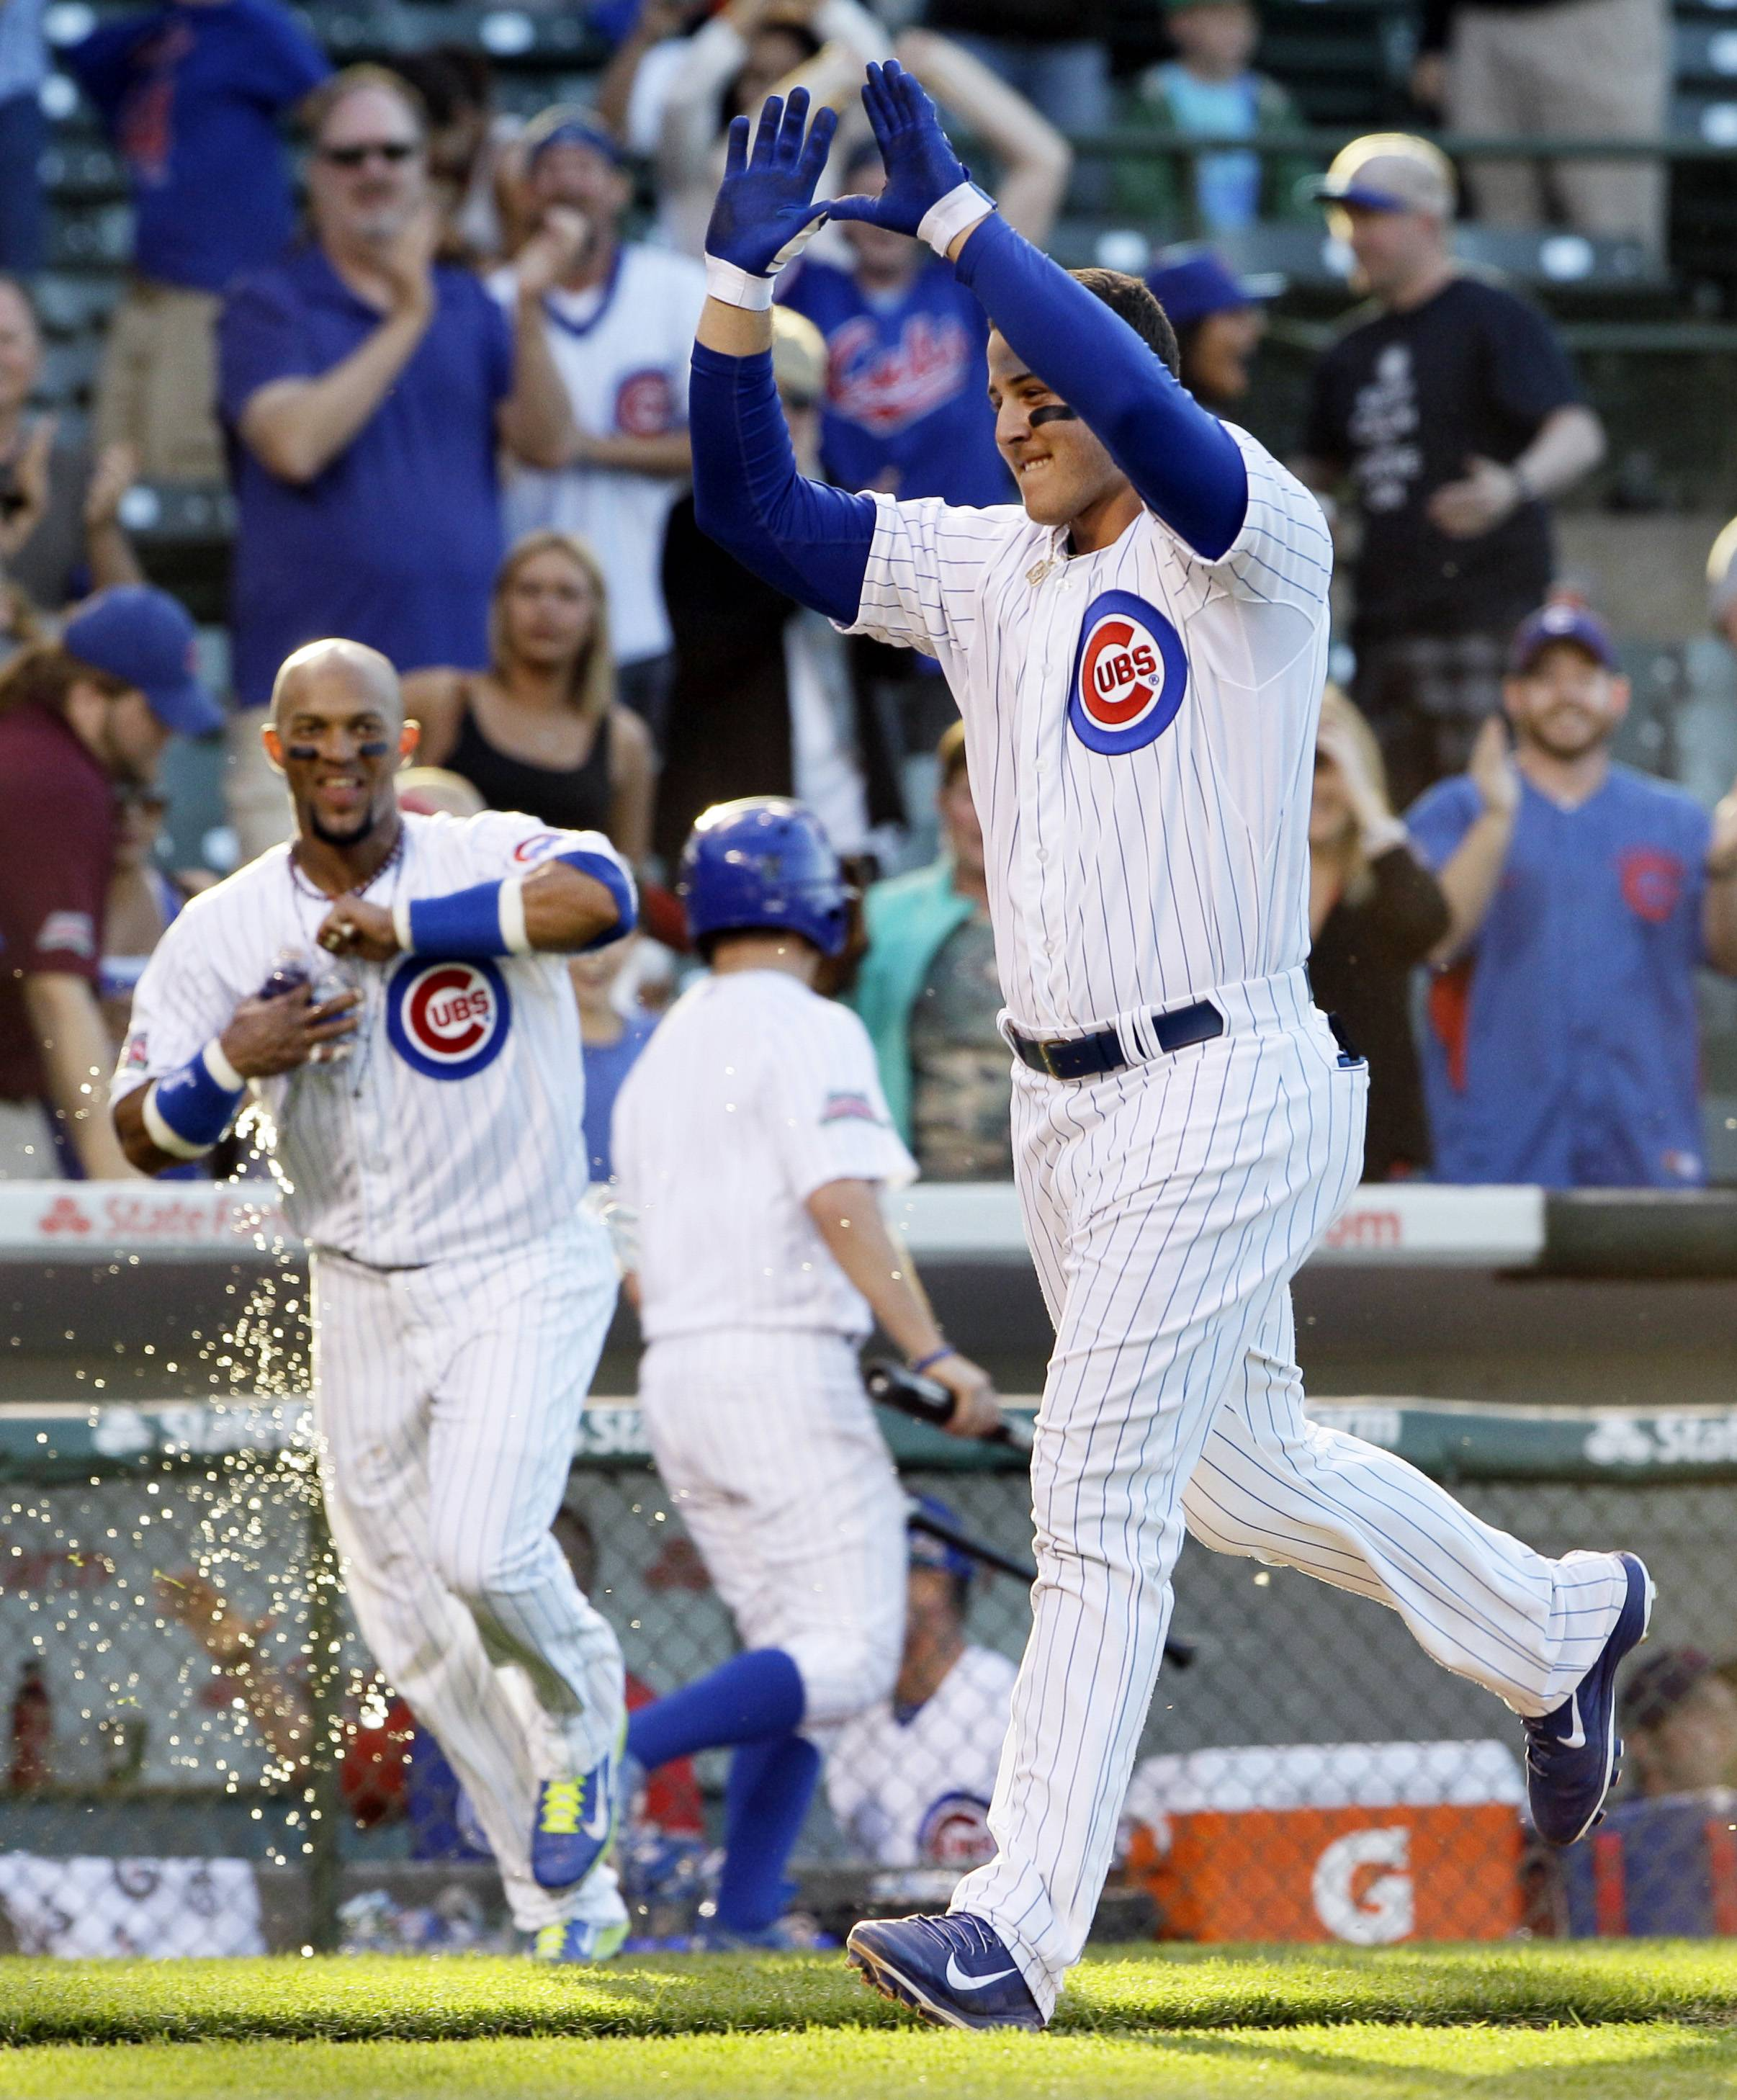 The Cubs' Anthony Rizzo celebrates as he rounds the bases after hitting the game-winning two-run home run during the 13th inning of a baseball game against the Miami Marlins in Chicago, Friday, June 6, 2014. The Cubs won 5-3.